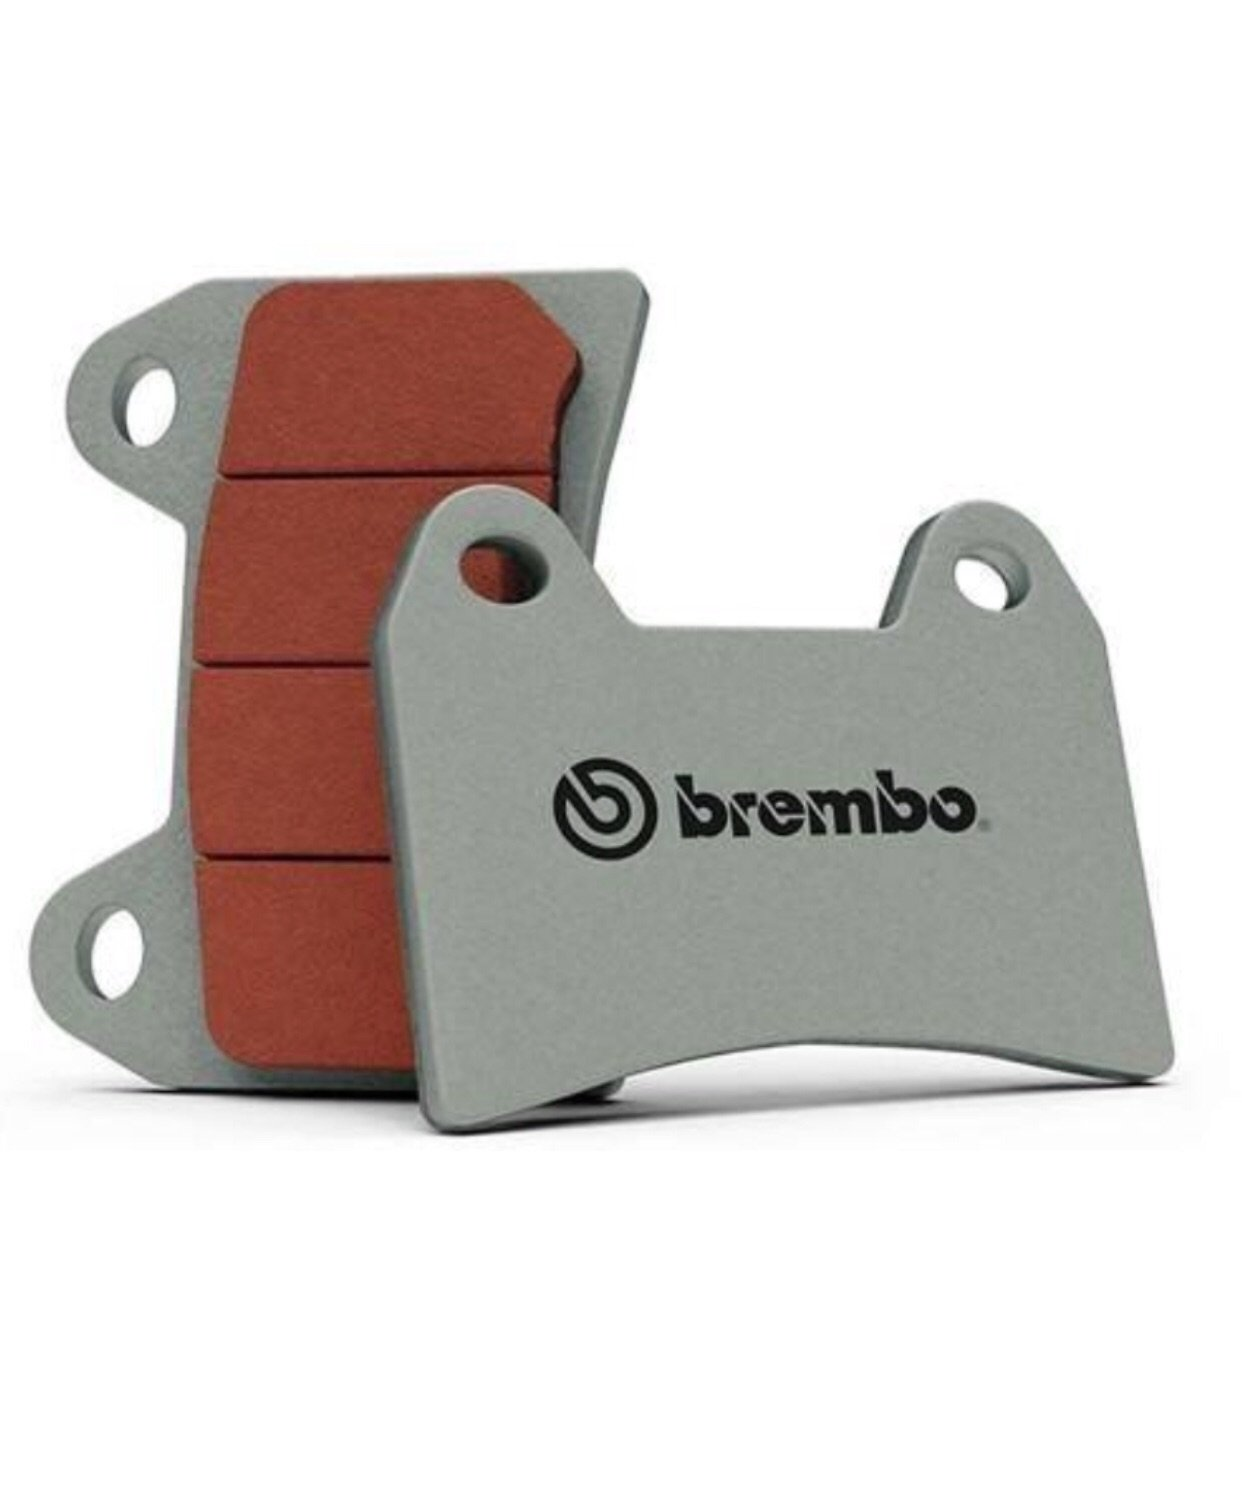 Triumph, Brake Pads, Brembo - Race and Trackday Parts